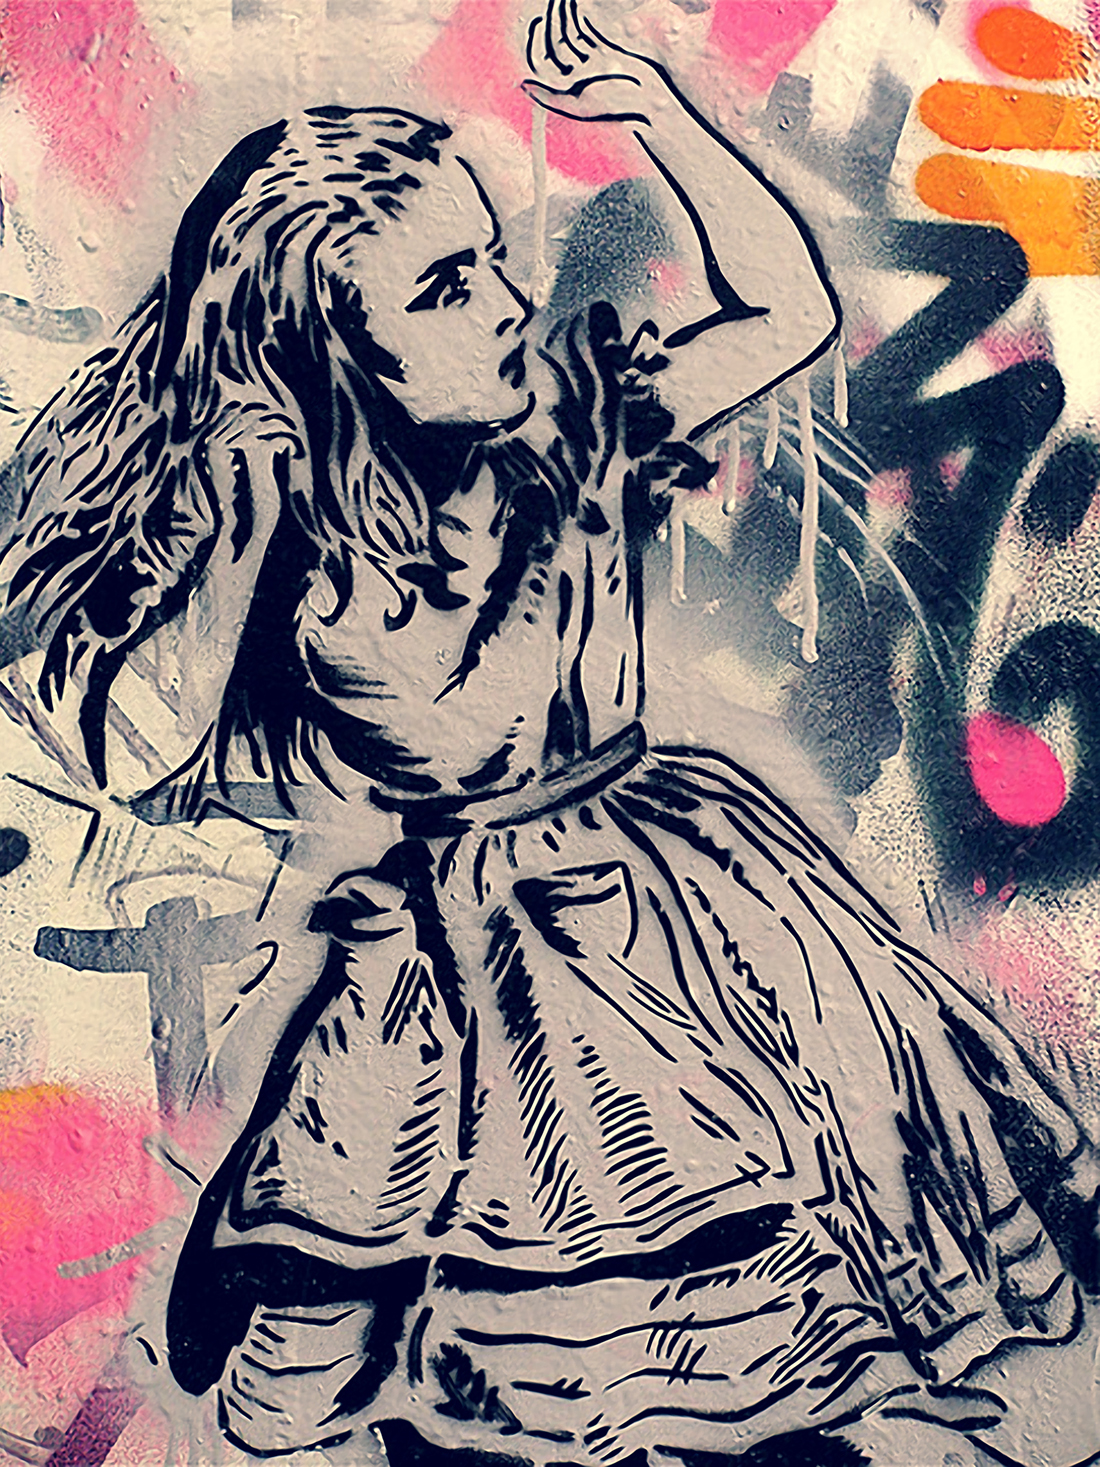 Drawn alice in wonderland street art Details Art about Wonderland Wonderland